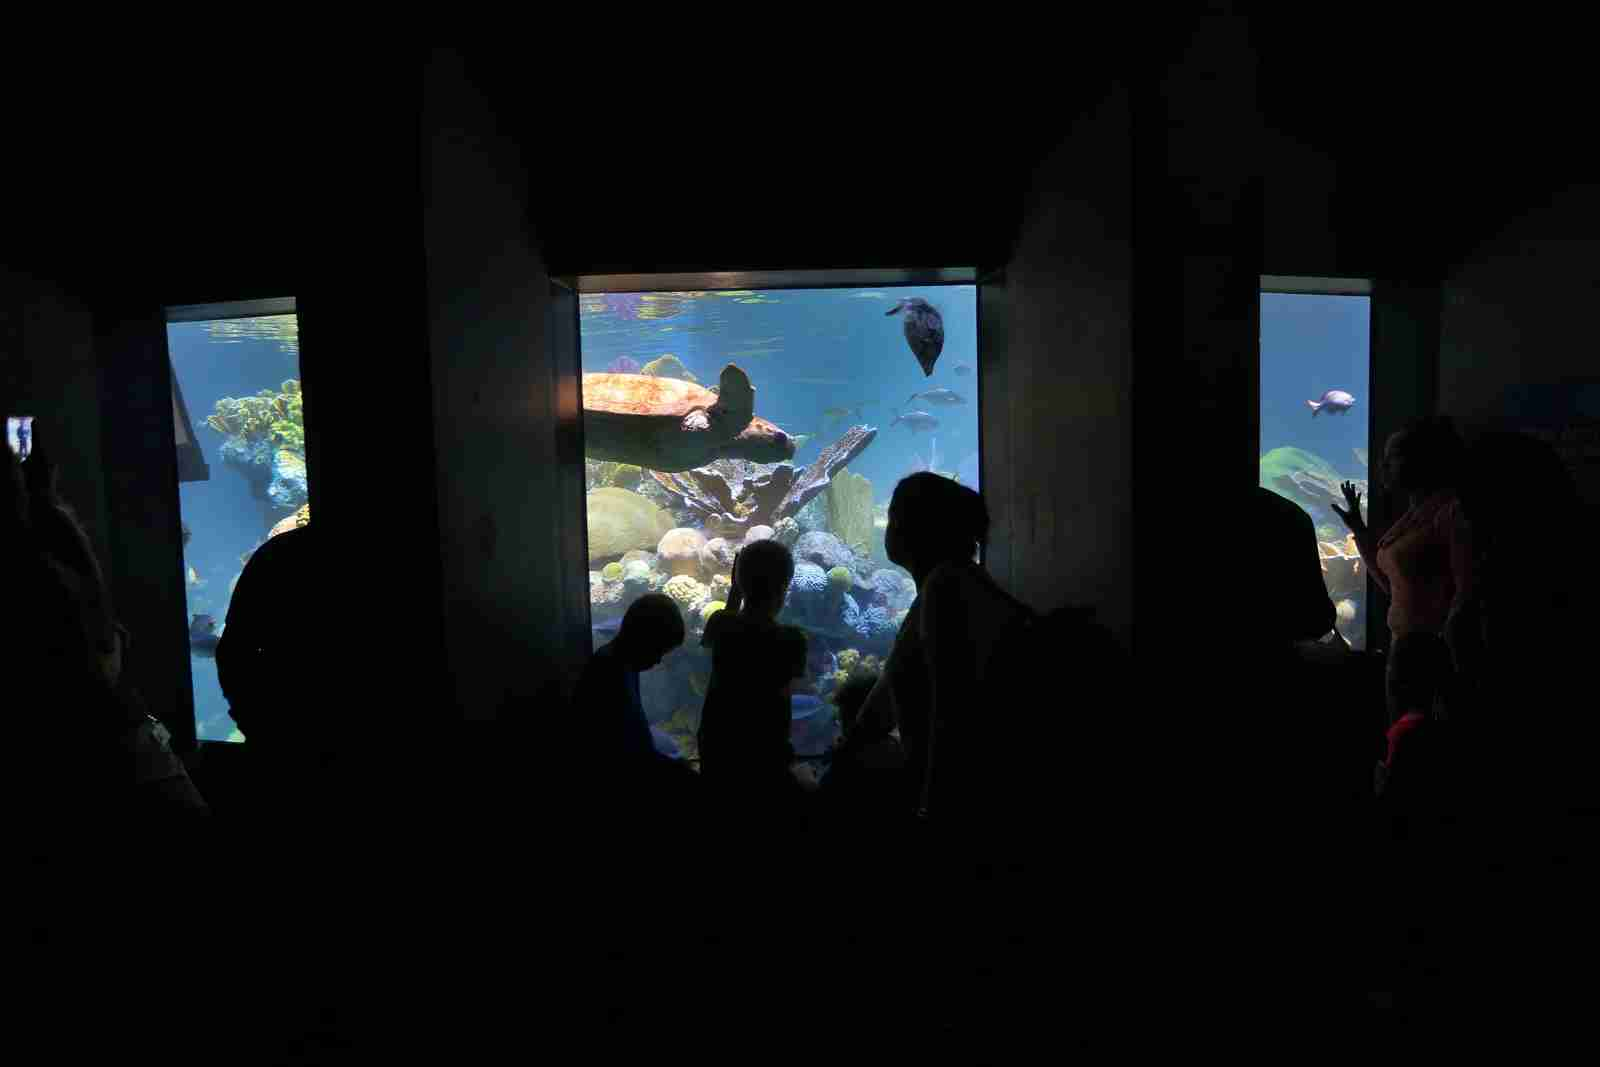 The Giant Ocean Tank at the New England Aquarium. (Photo by David L. Ryan / The Boston Globe / Getty Images)